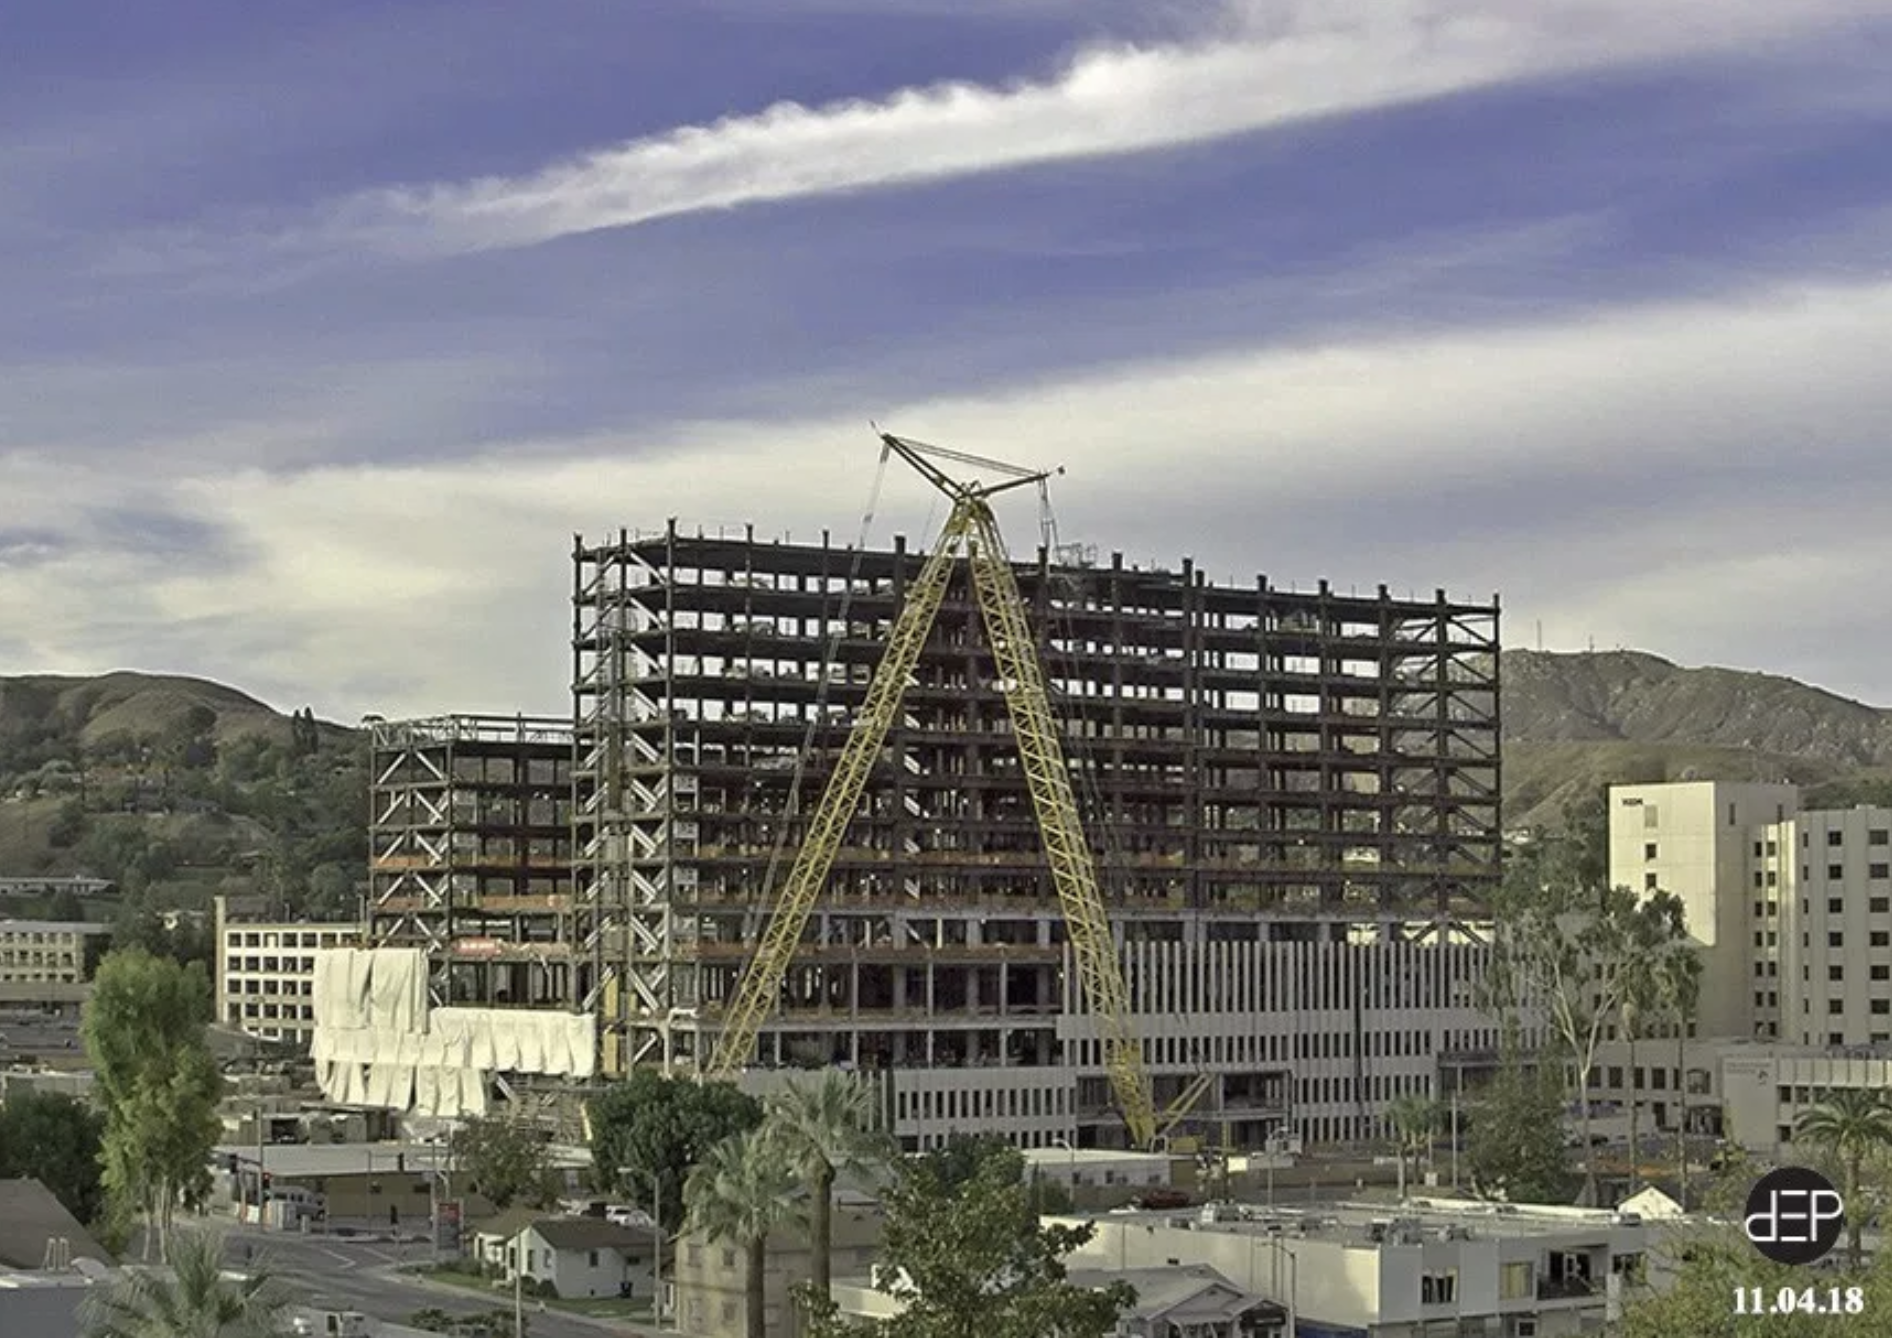 Progress Is Happening On The New Hospital In Loma Linda The General